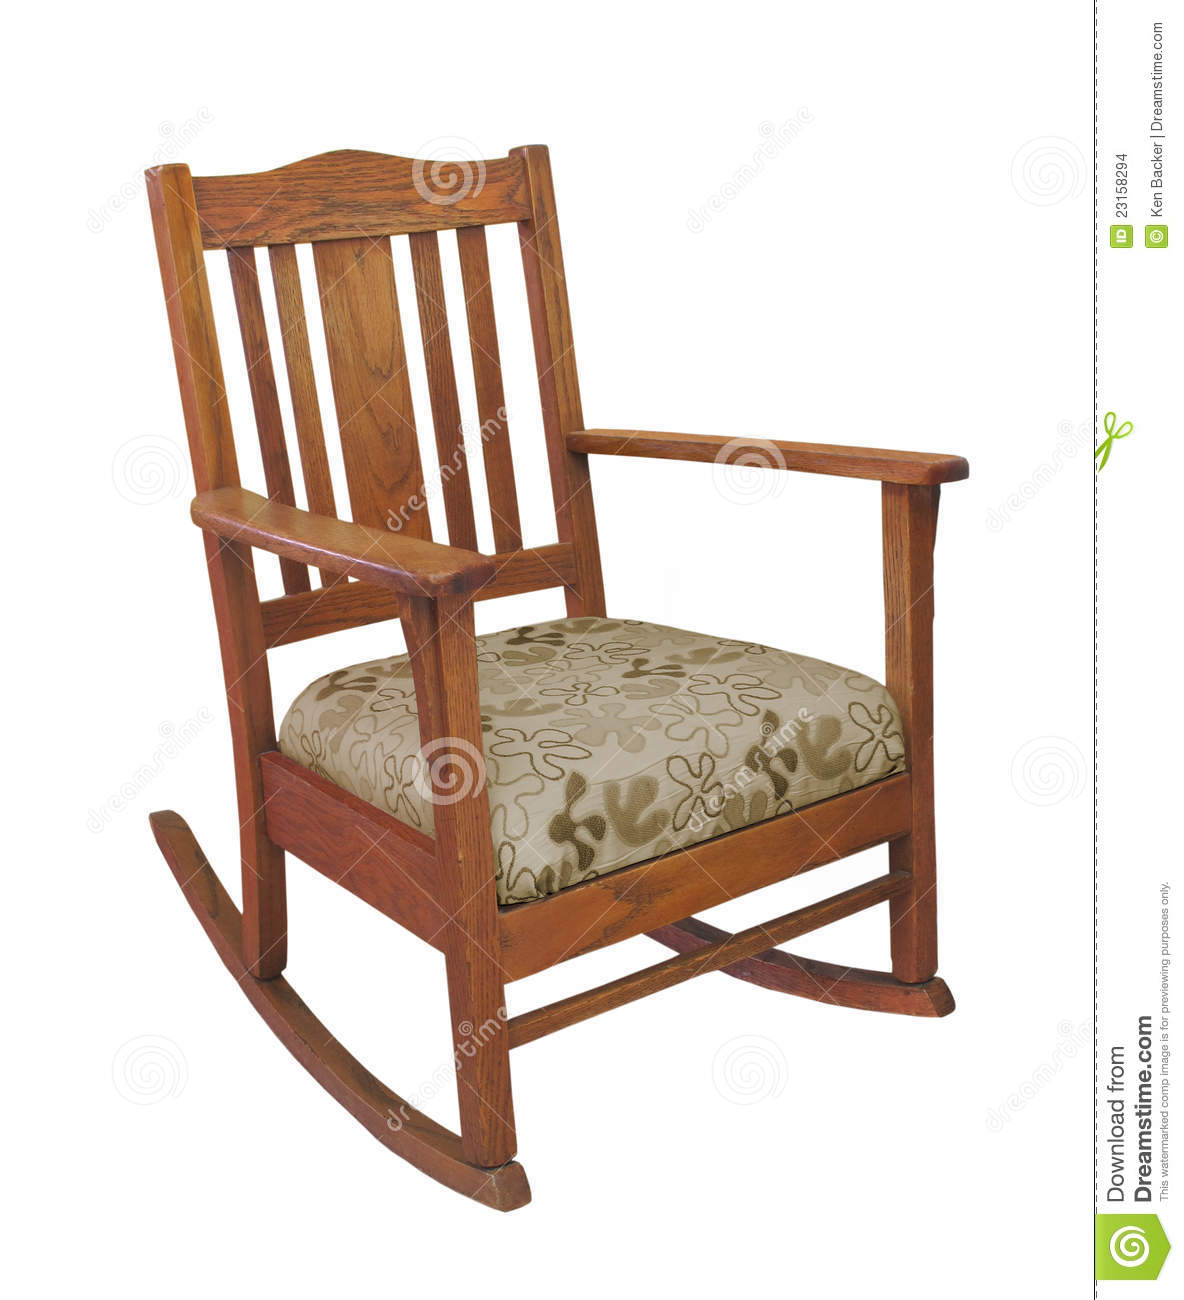 antique wooden rocking chair isolated stock photo image of retro isolated 23158294. Black Bedroom Furniture Sets. Home Design Ideas